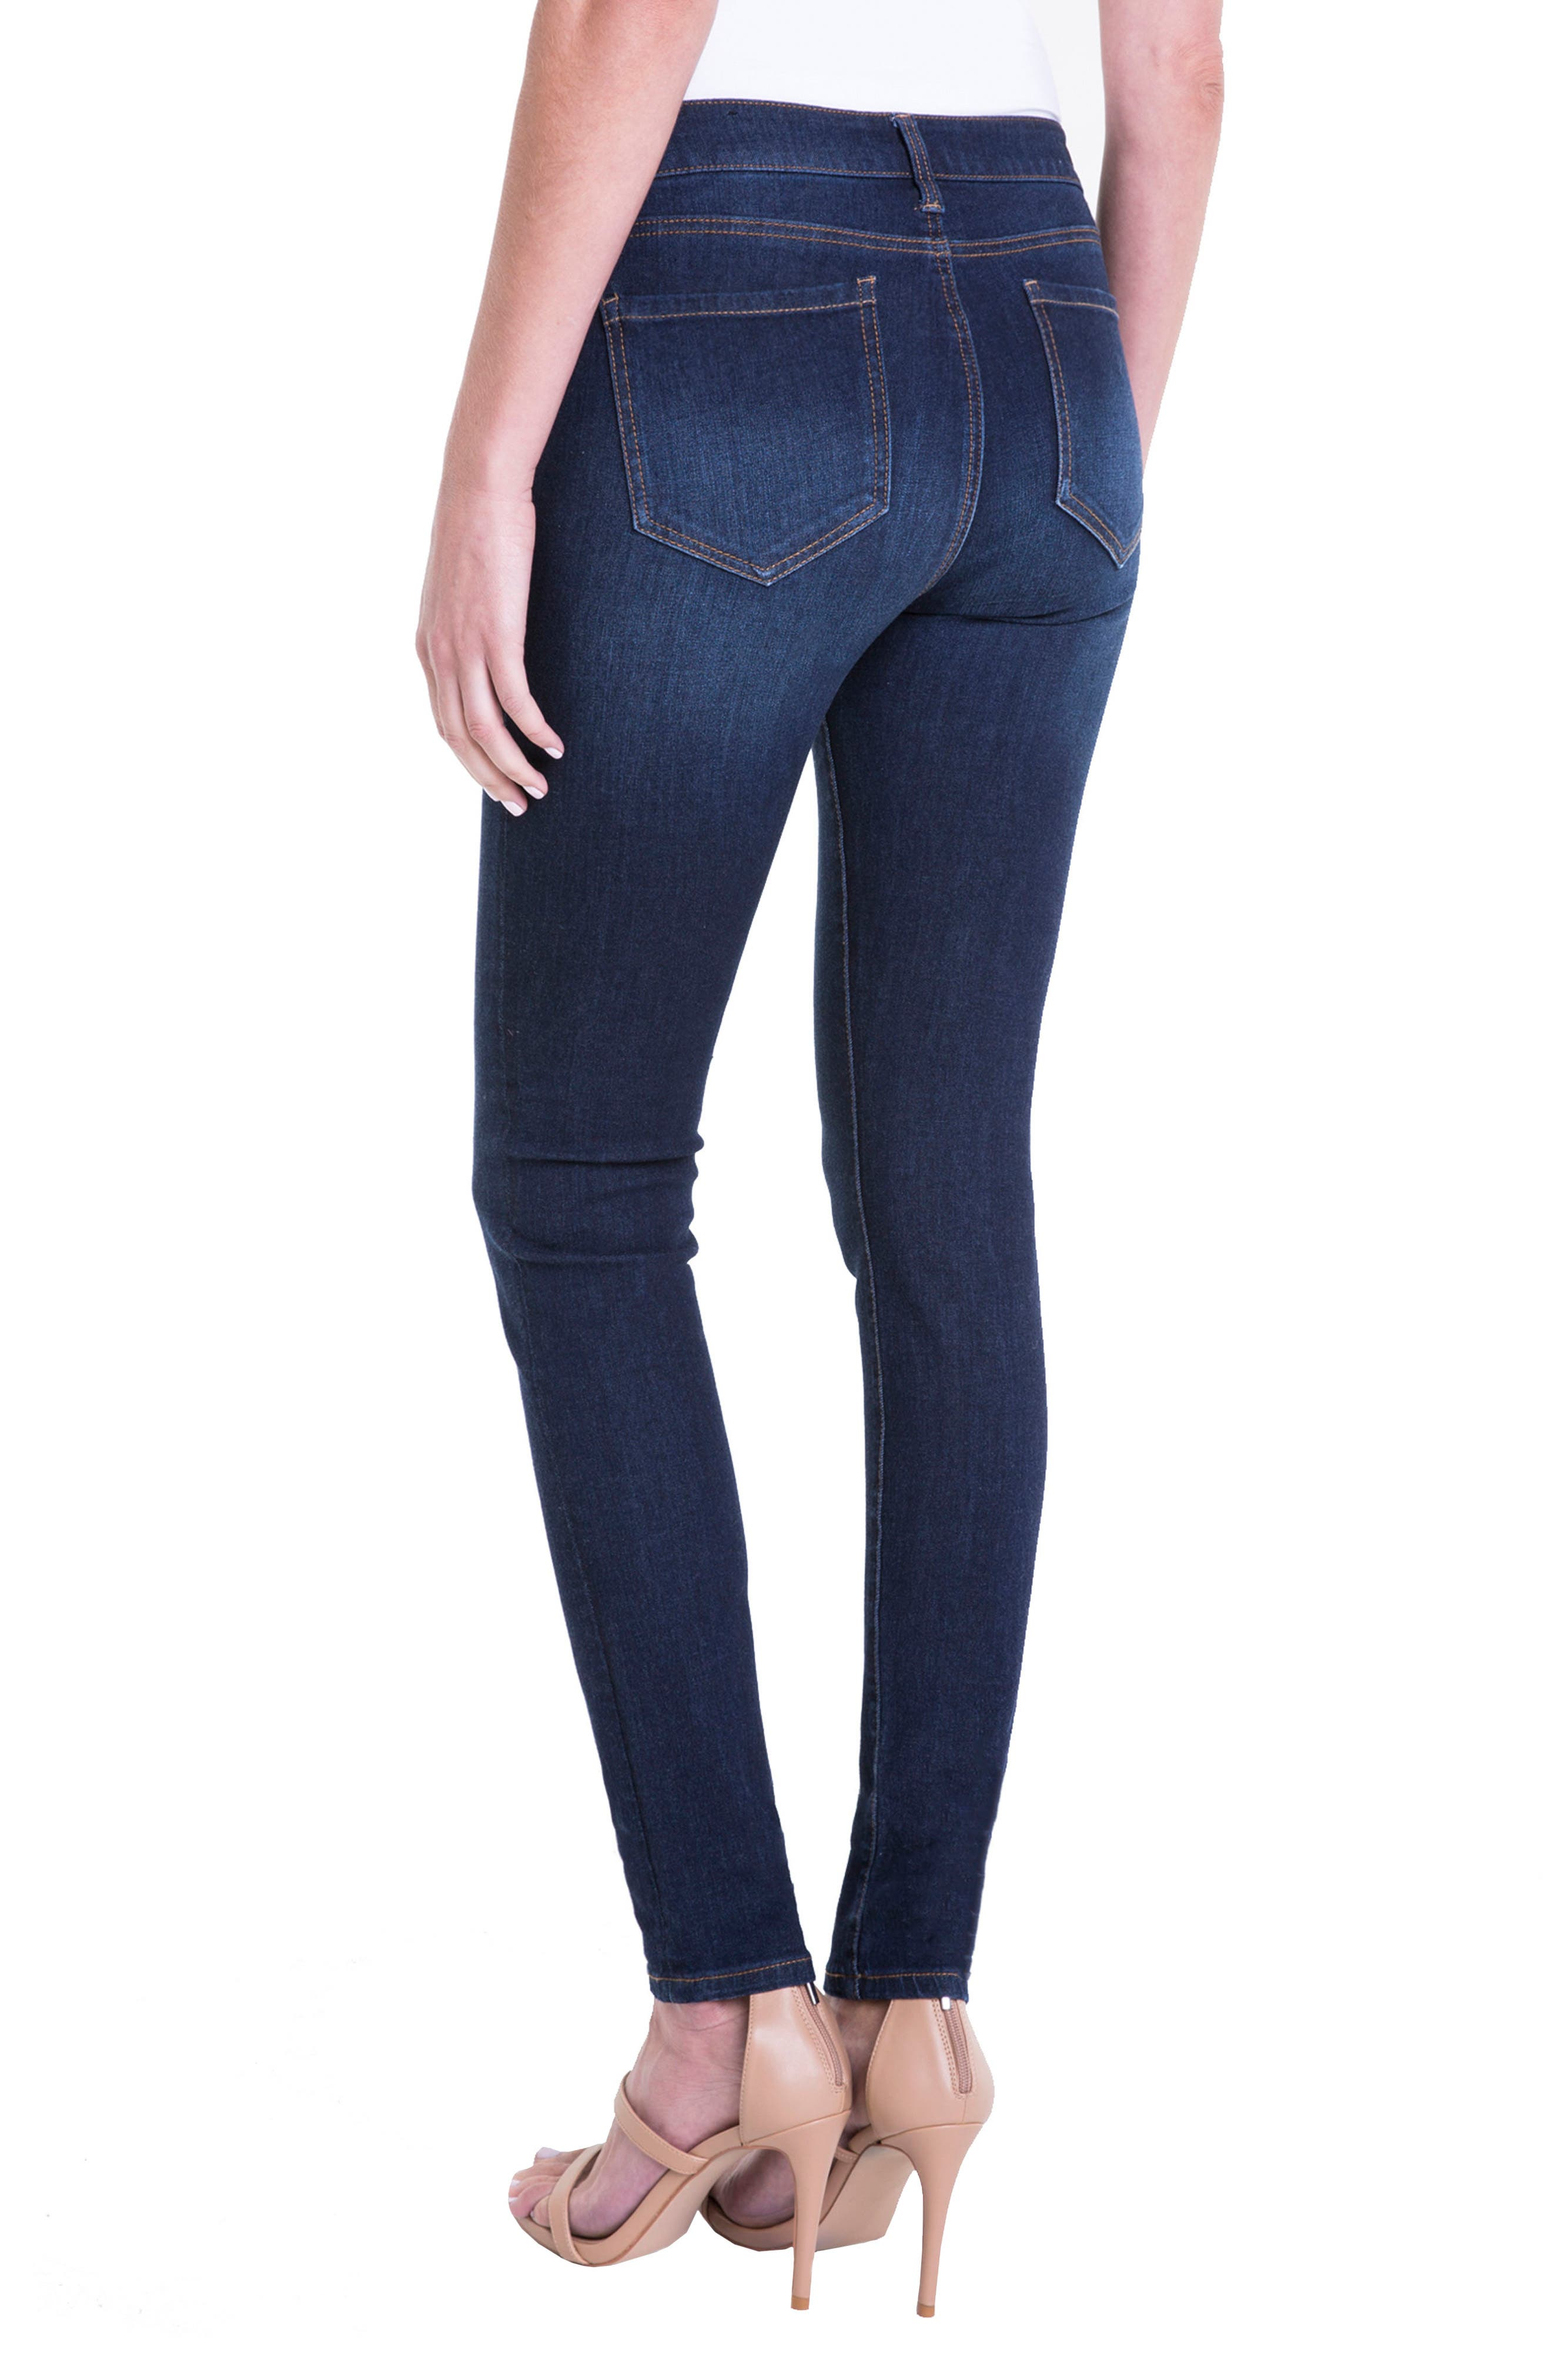 Abby Stretch Curvy Fit Skinny Jeans,                             Alternate thumbnail 2, color,                             Dark Blue